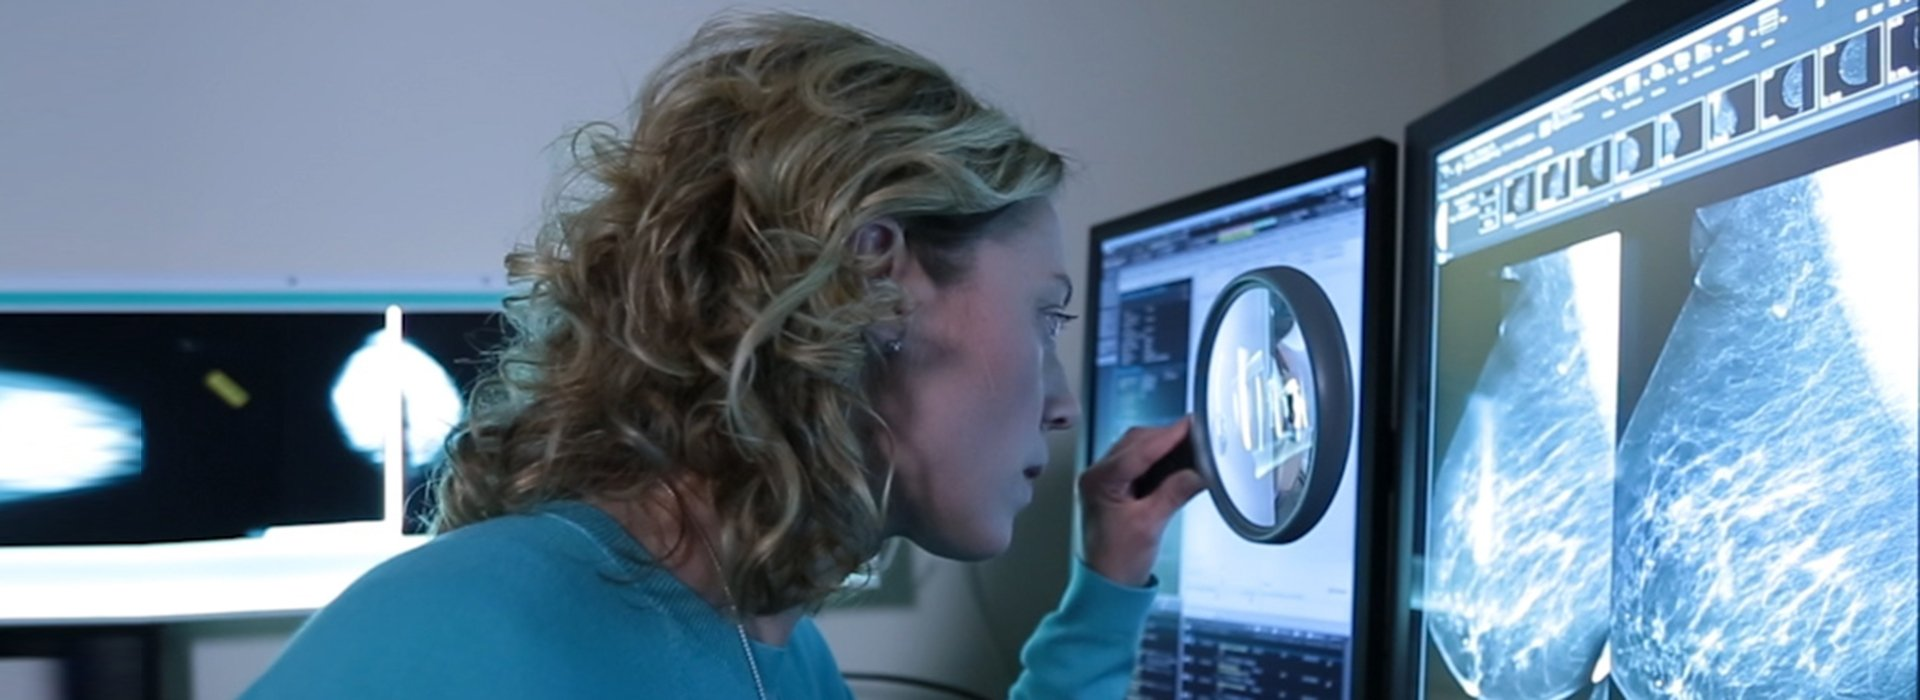 Doctor examining breast cancer scans.